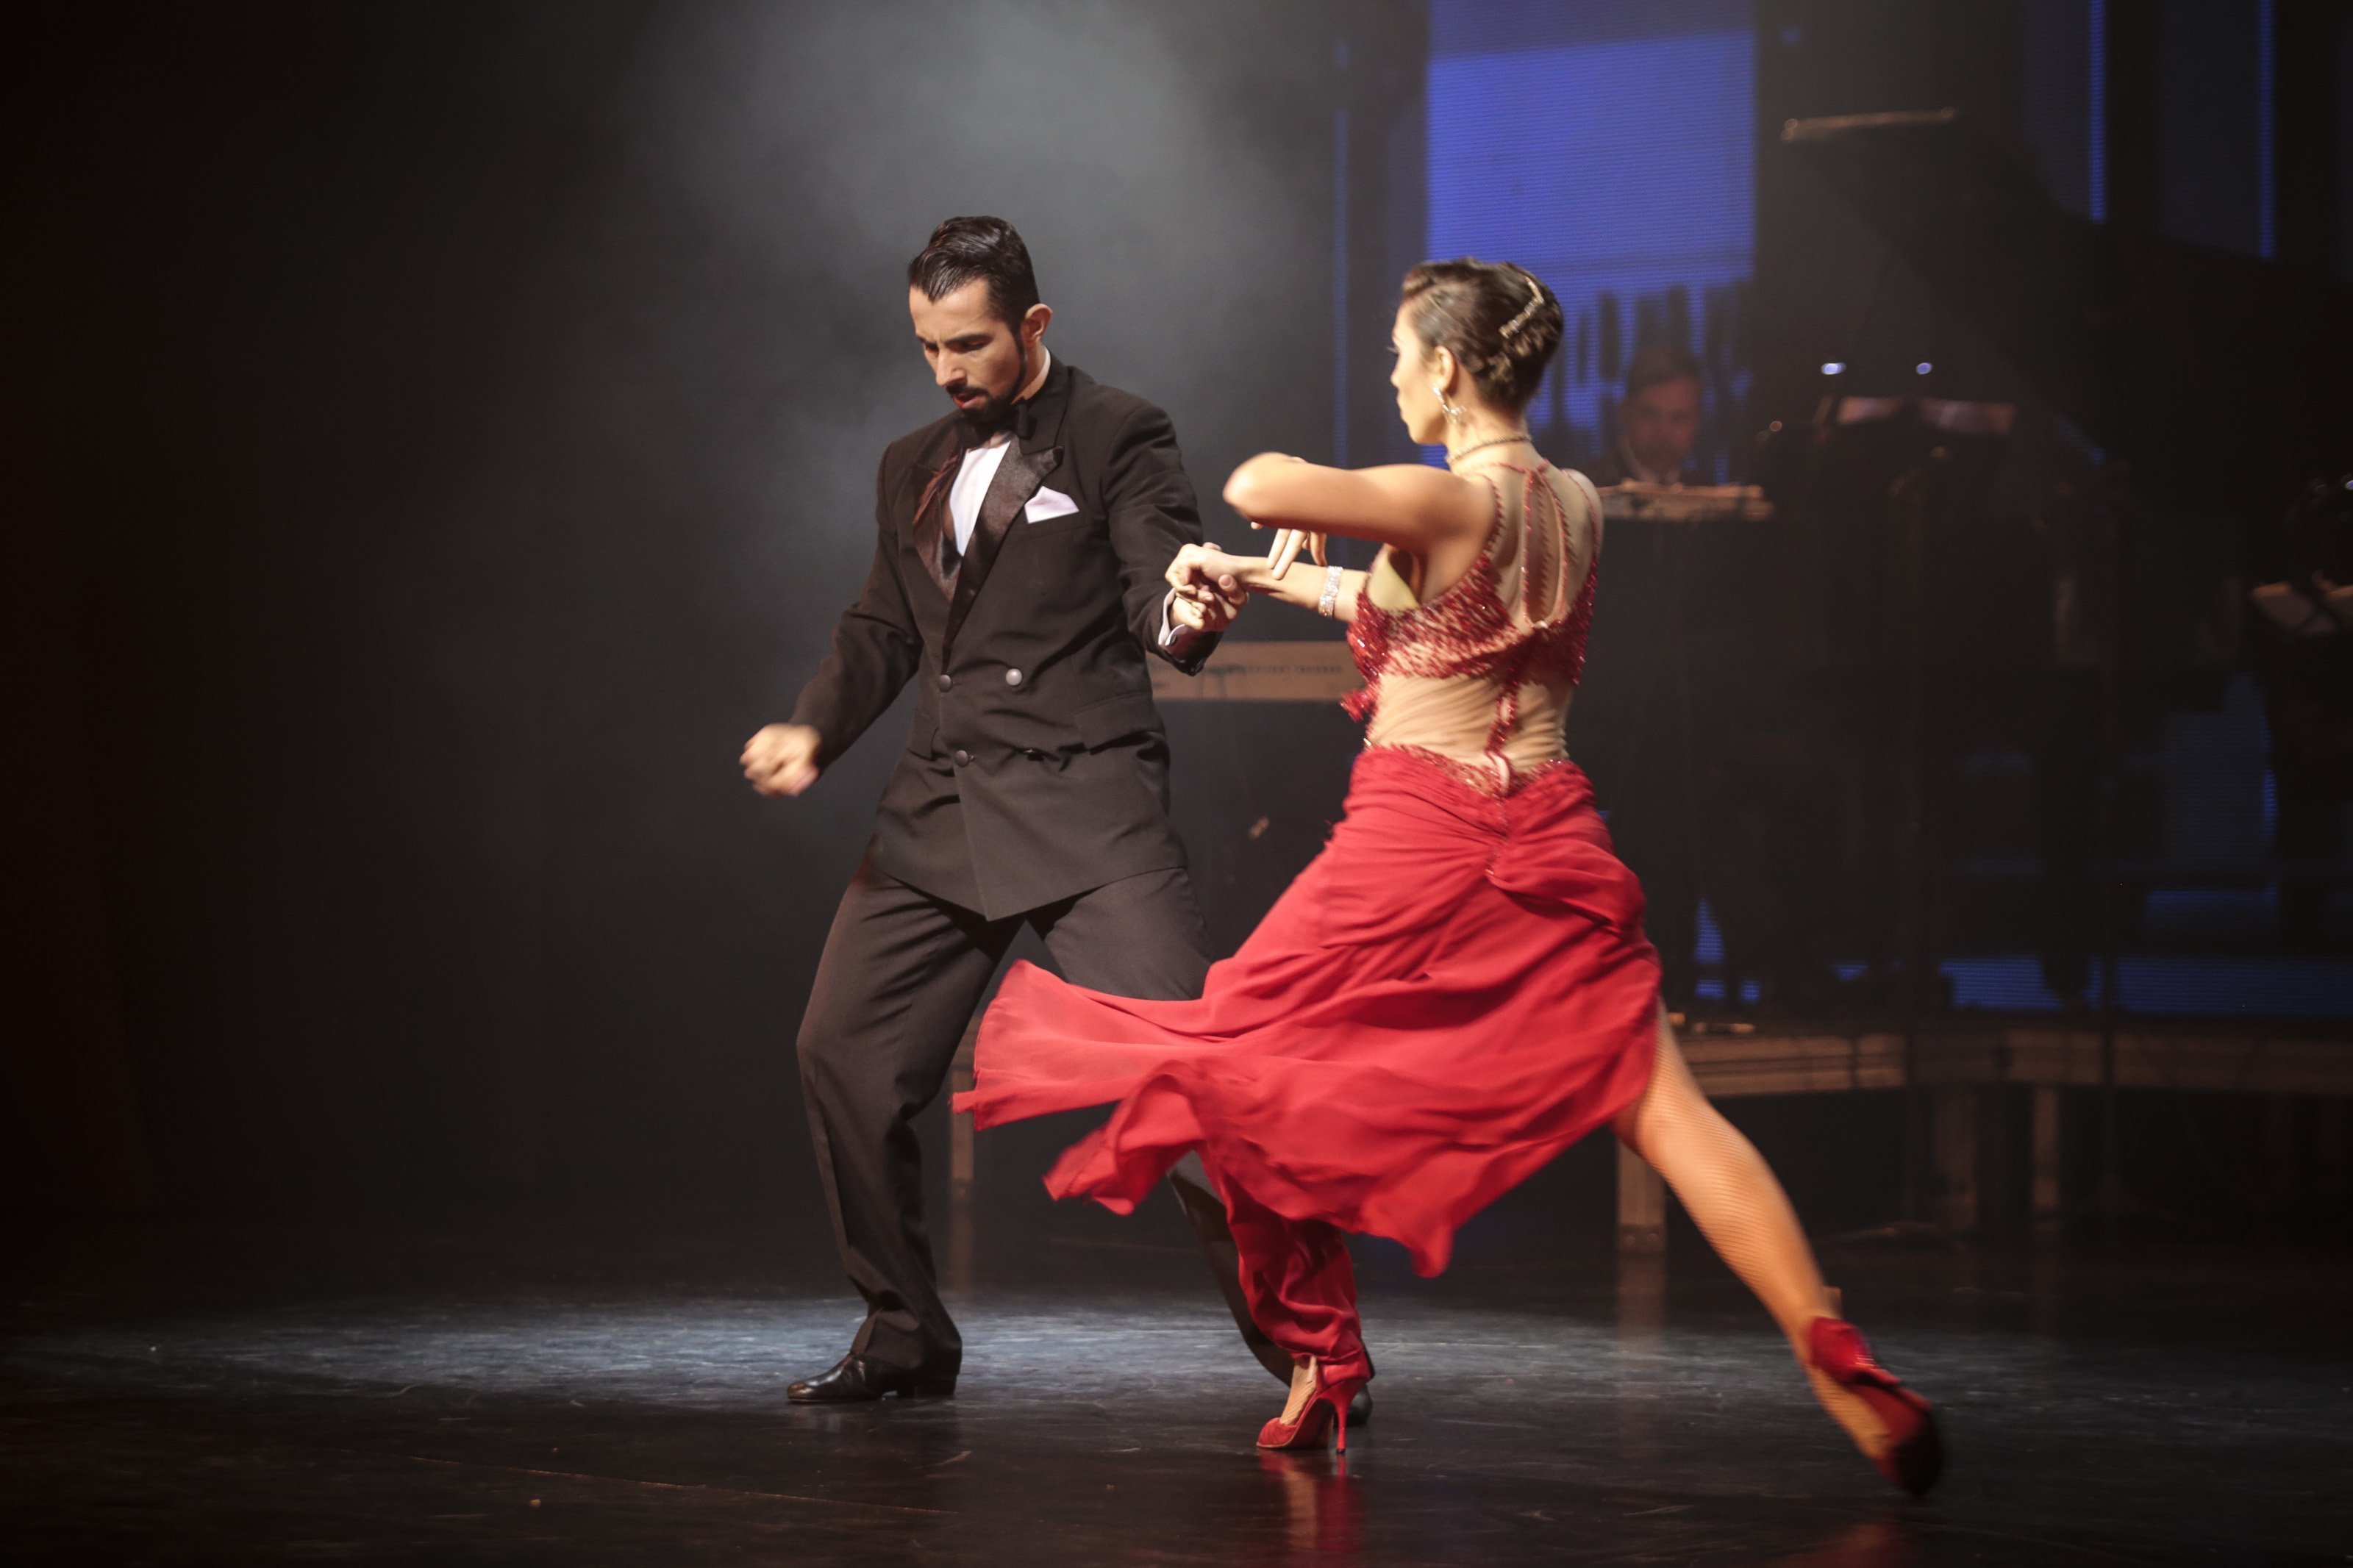 Salsa and Tango Differences That Only Few People Know